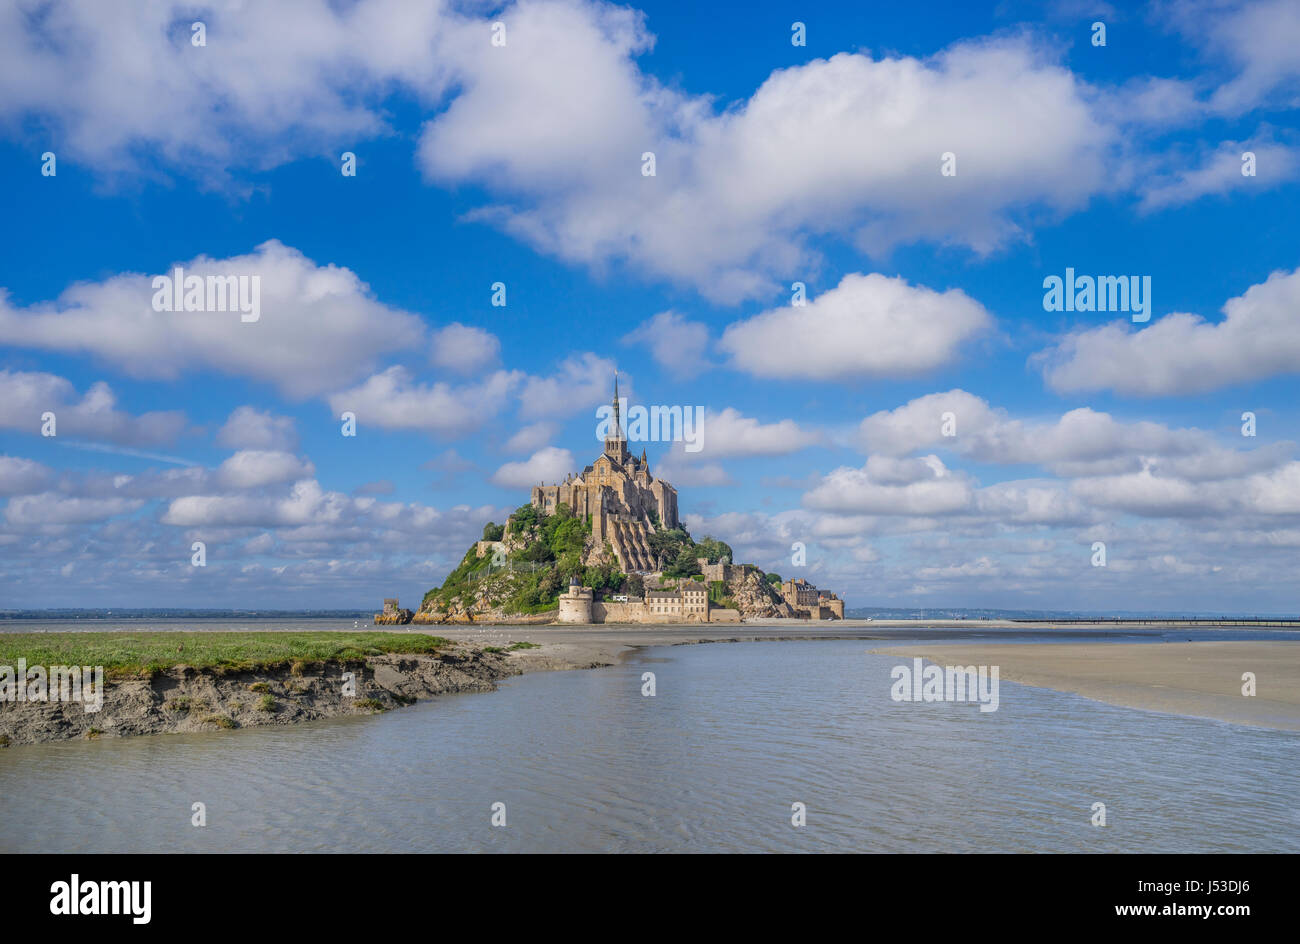 France, Normandy, view of Mont Saint-Michel in the estuary of Couesnon River Stock Photo